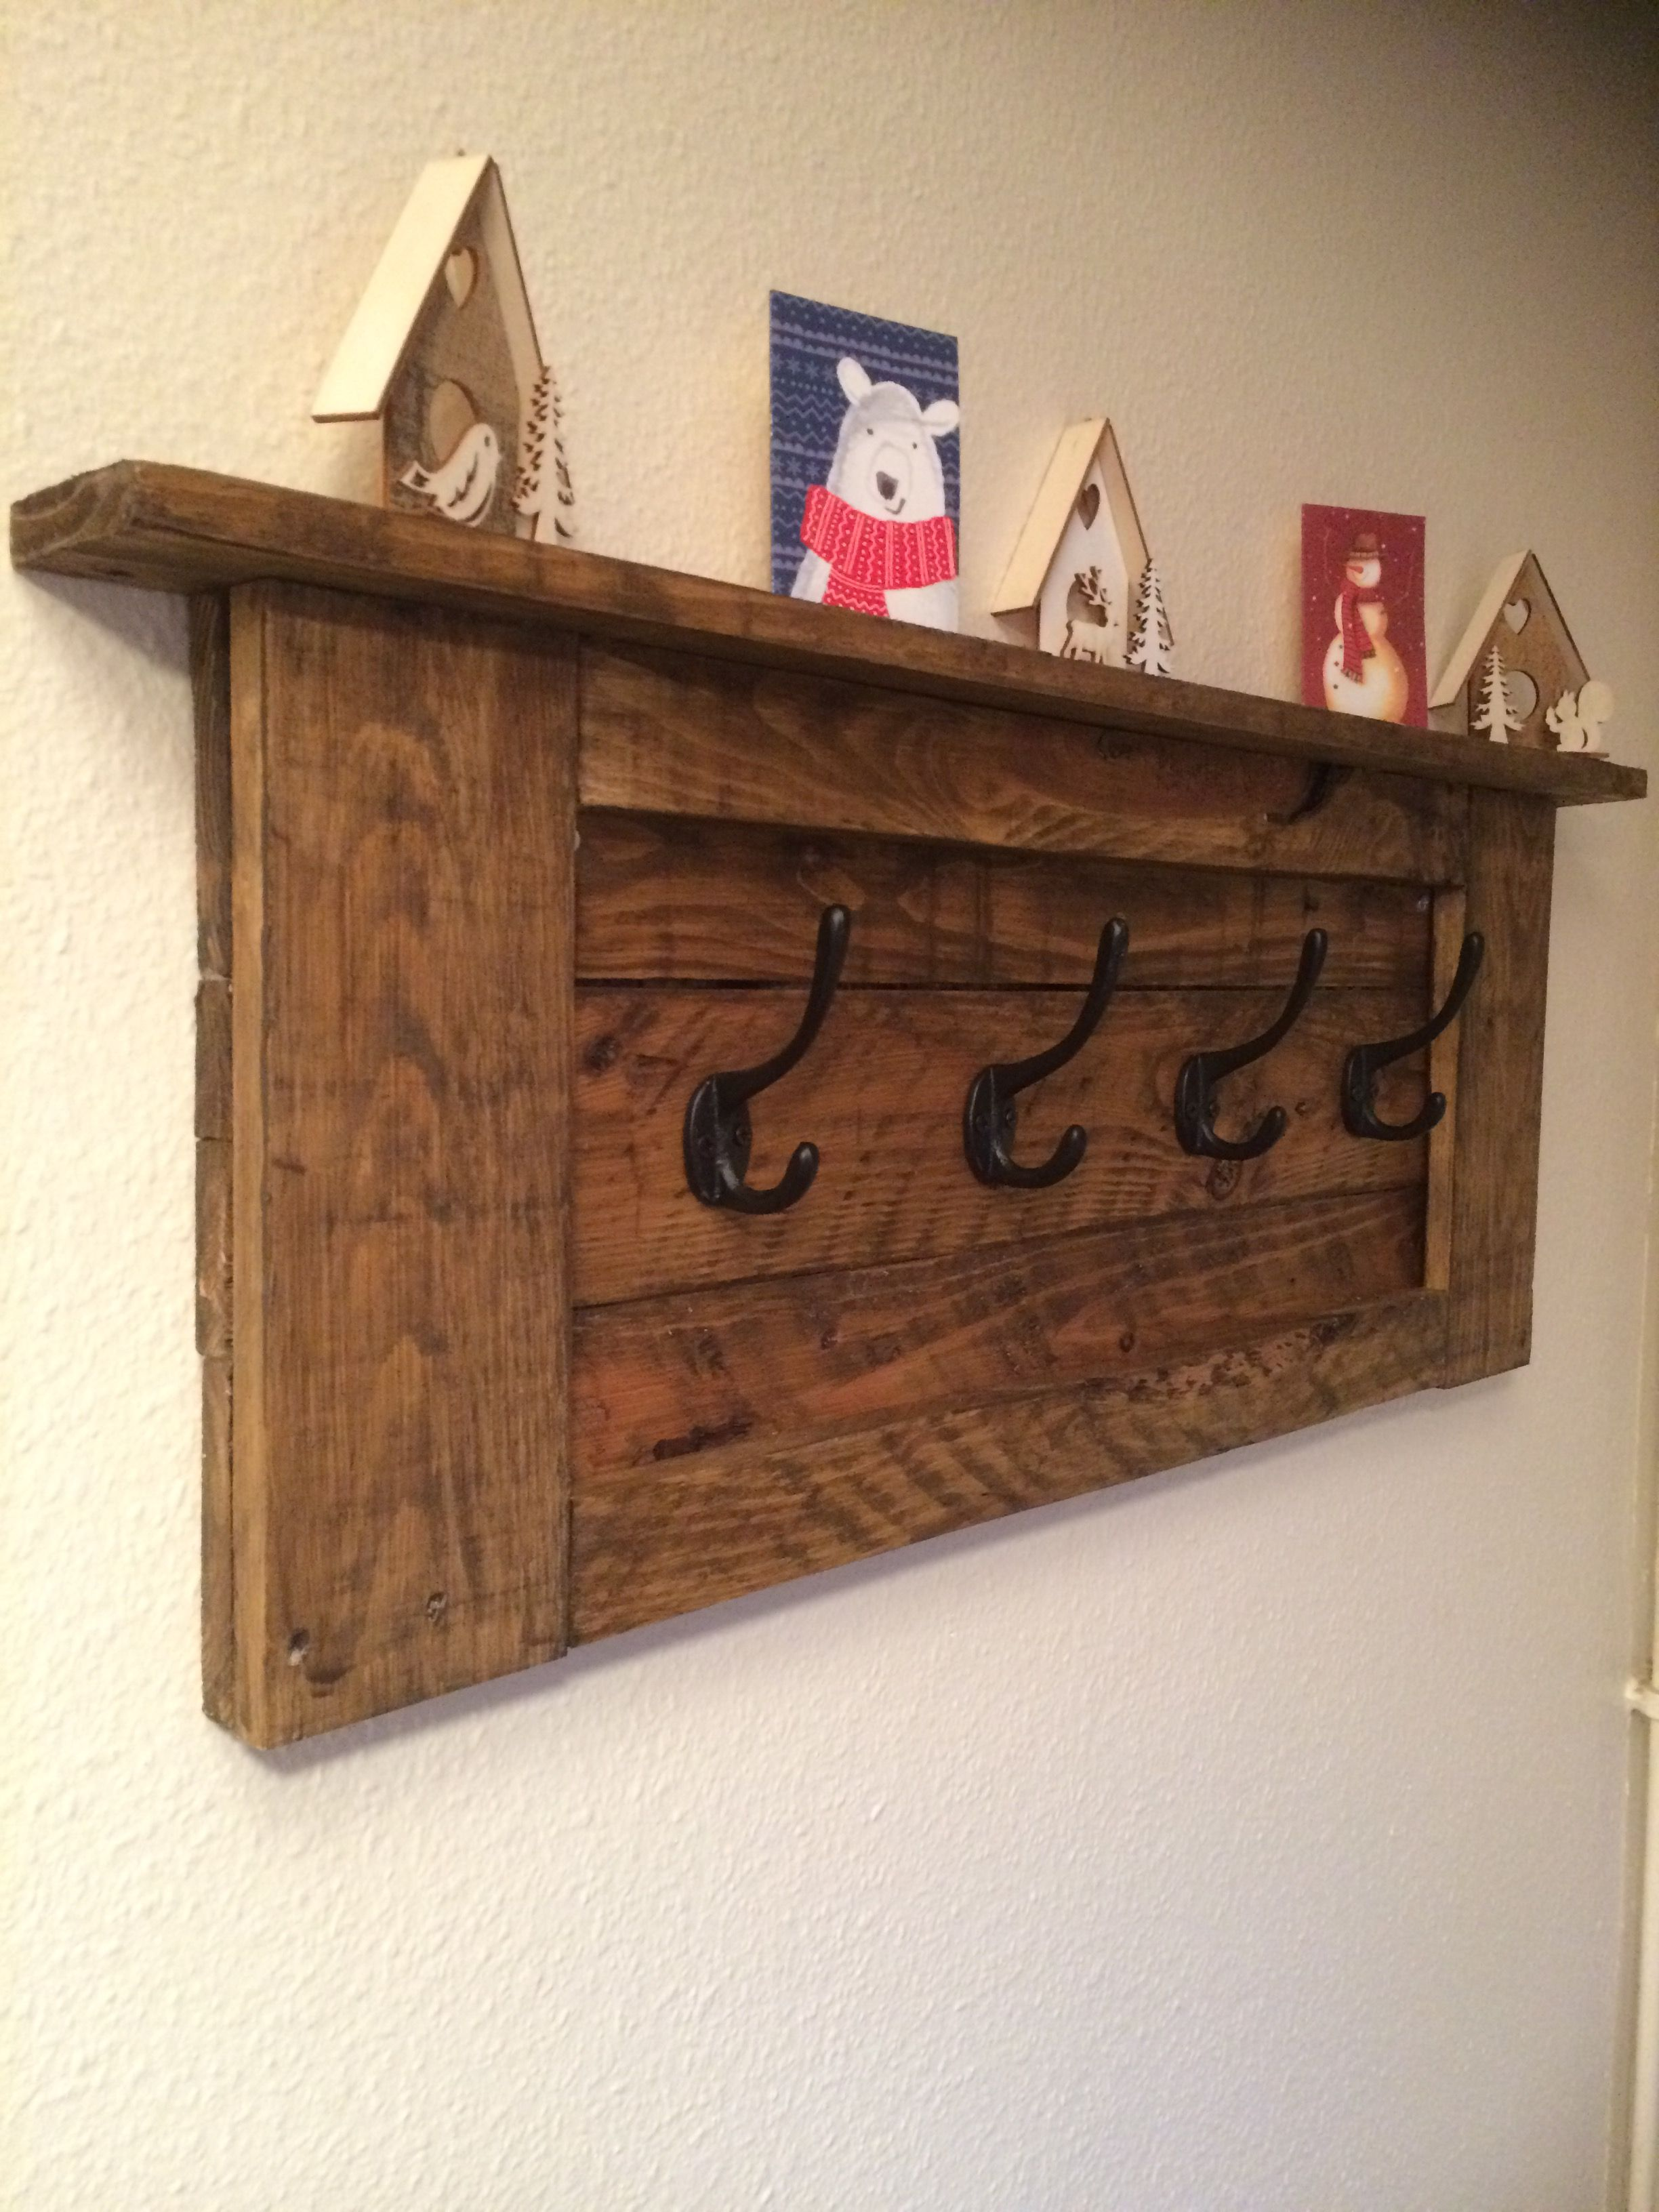 Rustic Wooden Coat Rack With Cast Iron Hooks Upcycled